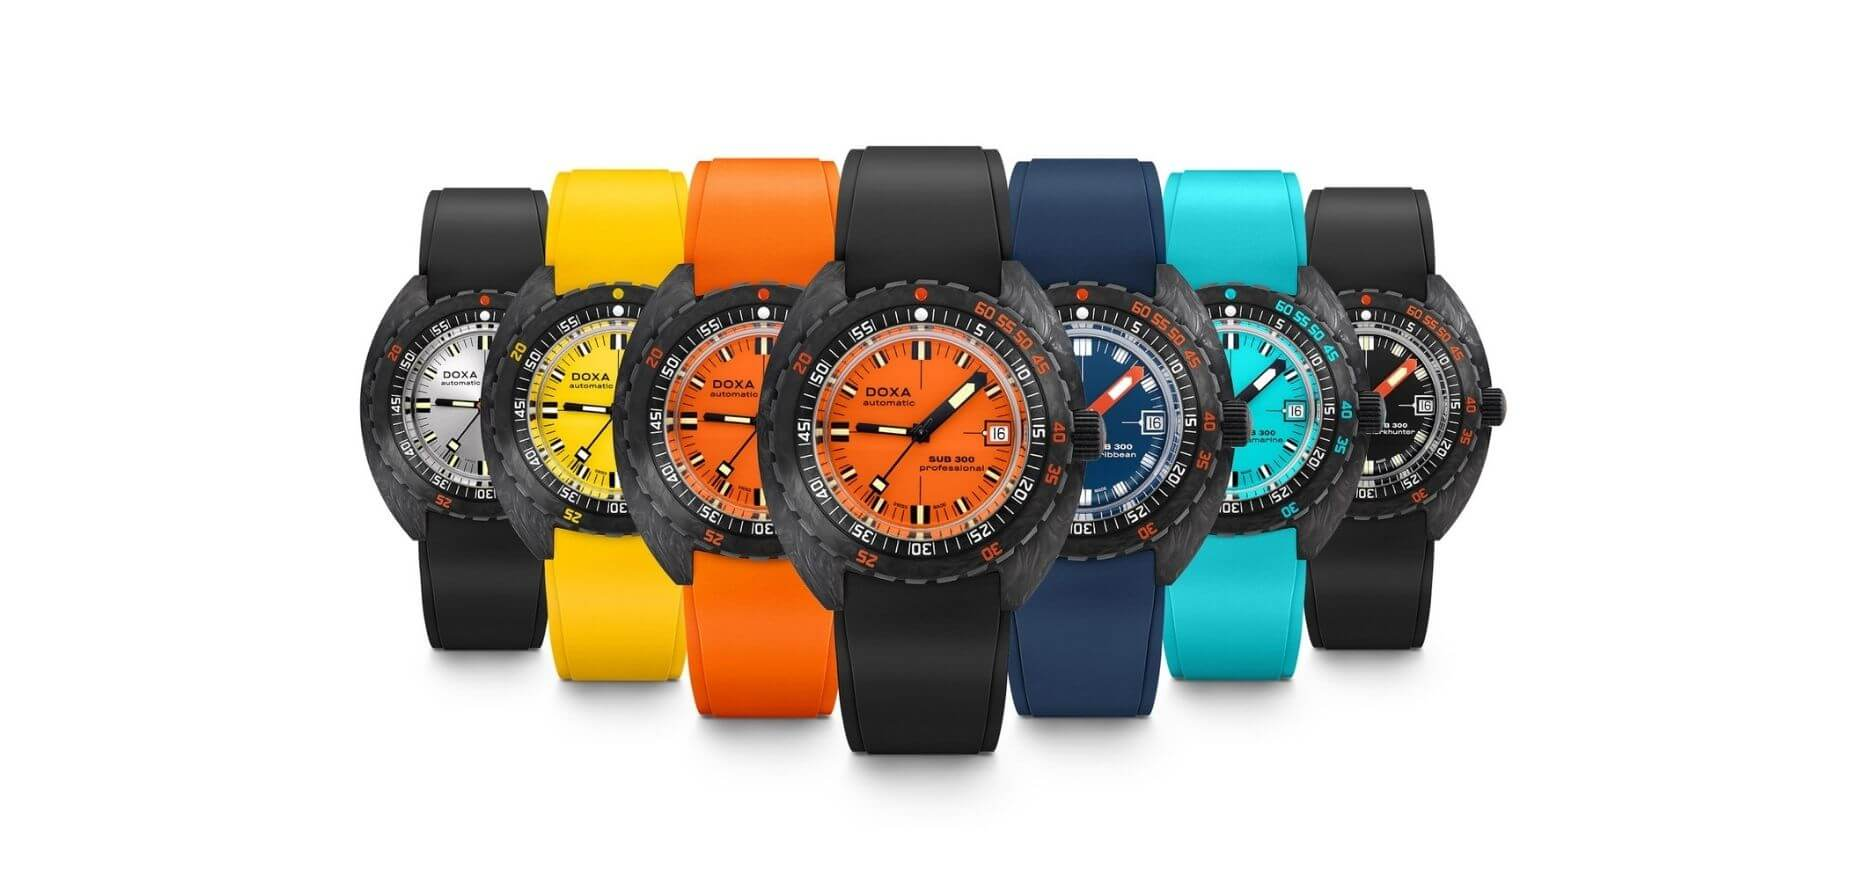 Doxa Sub 300 Carbon COSC: The Perfect Summer Watch For All Dive Watch Fans